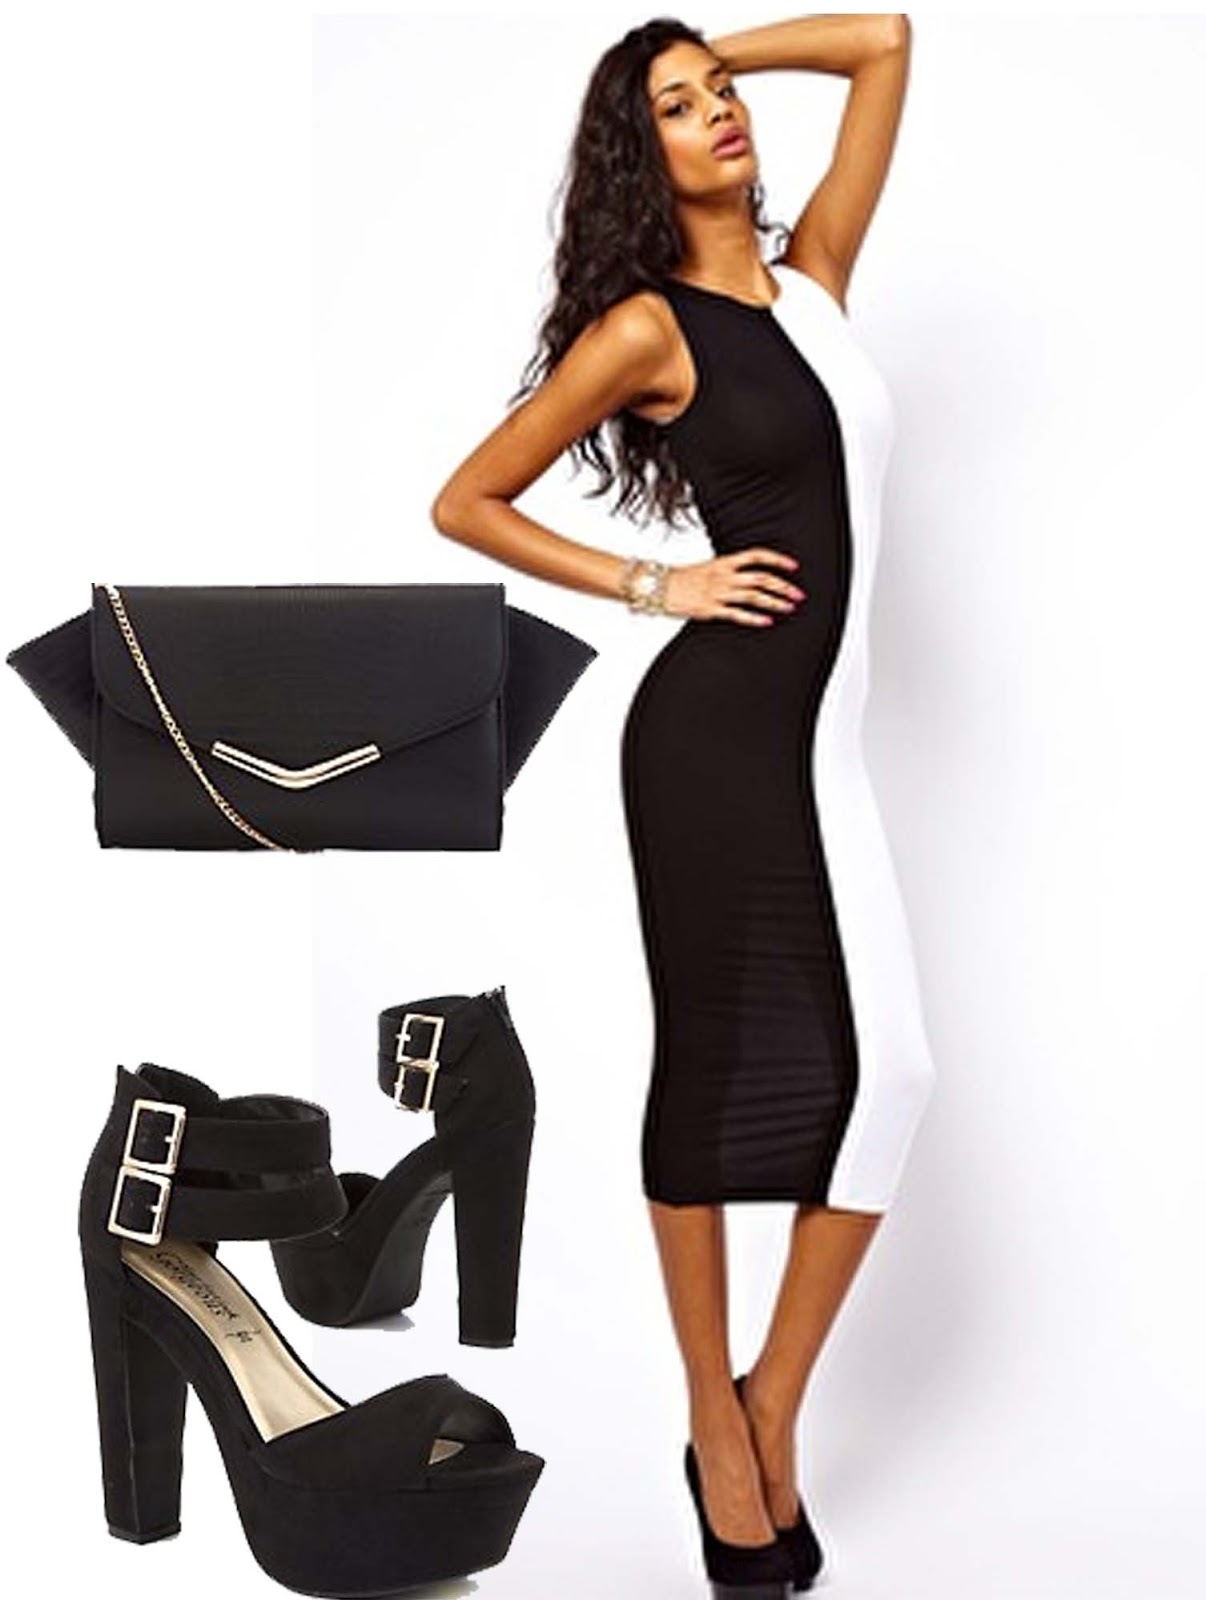 shoes to wear with midi dress playmates my